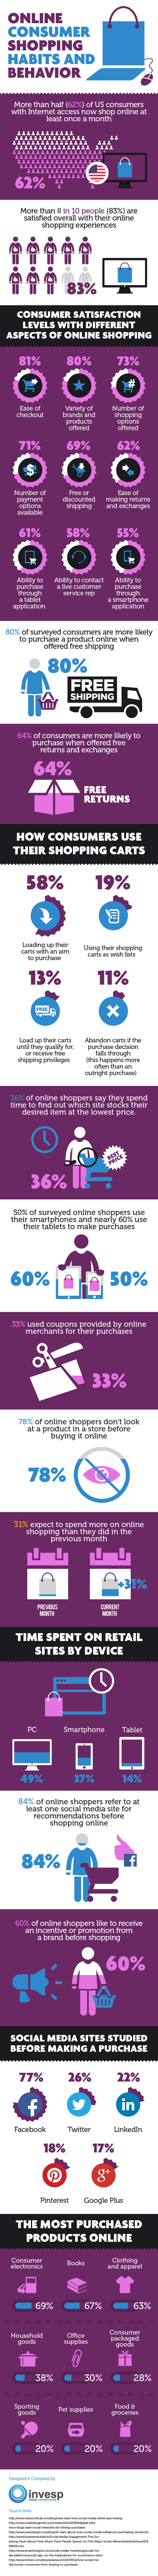 online consumer shopping habits and behavior statistics and online consumer shopping habits and behavior statistics and trends